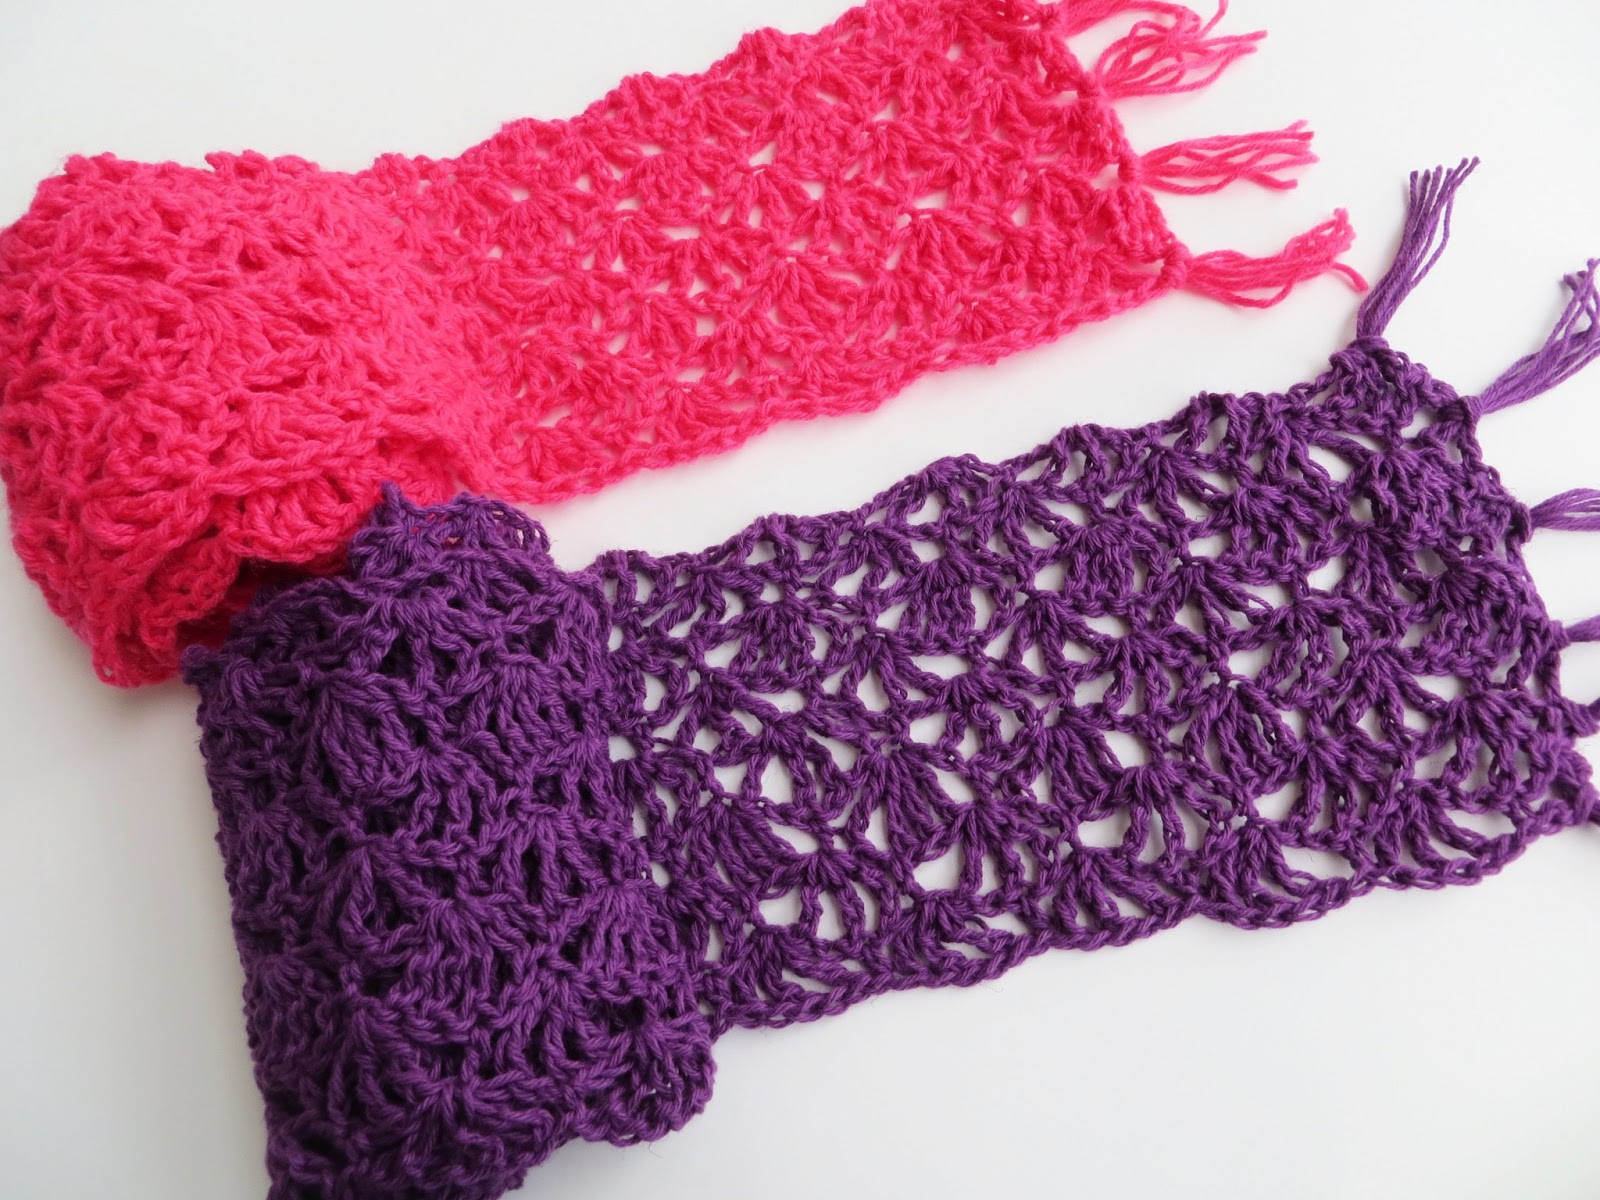 How To Crochet A Scarf : Crochet Dreamz Alana Lacy Scarf Free Crochet Pattern